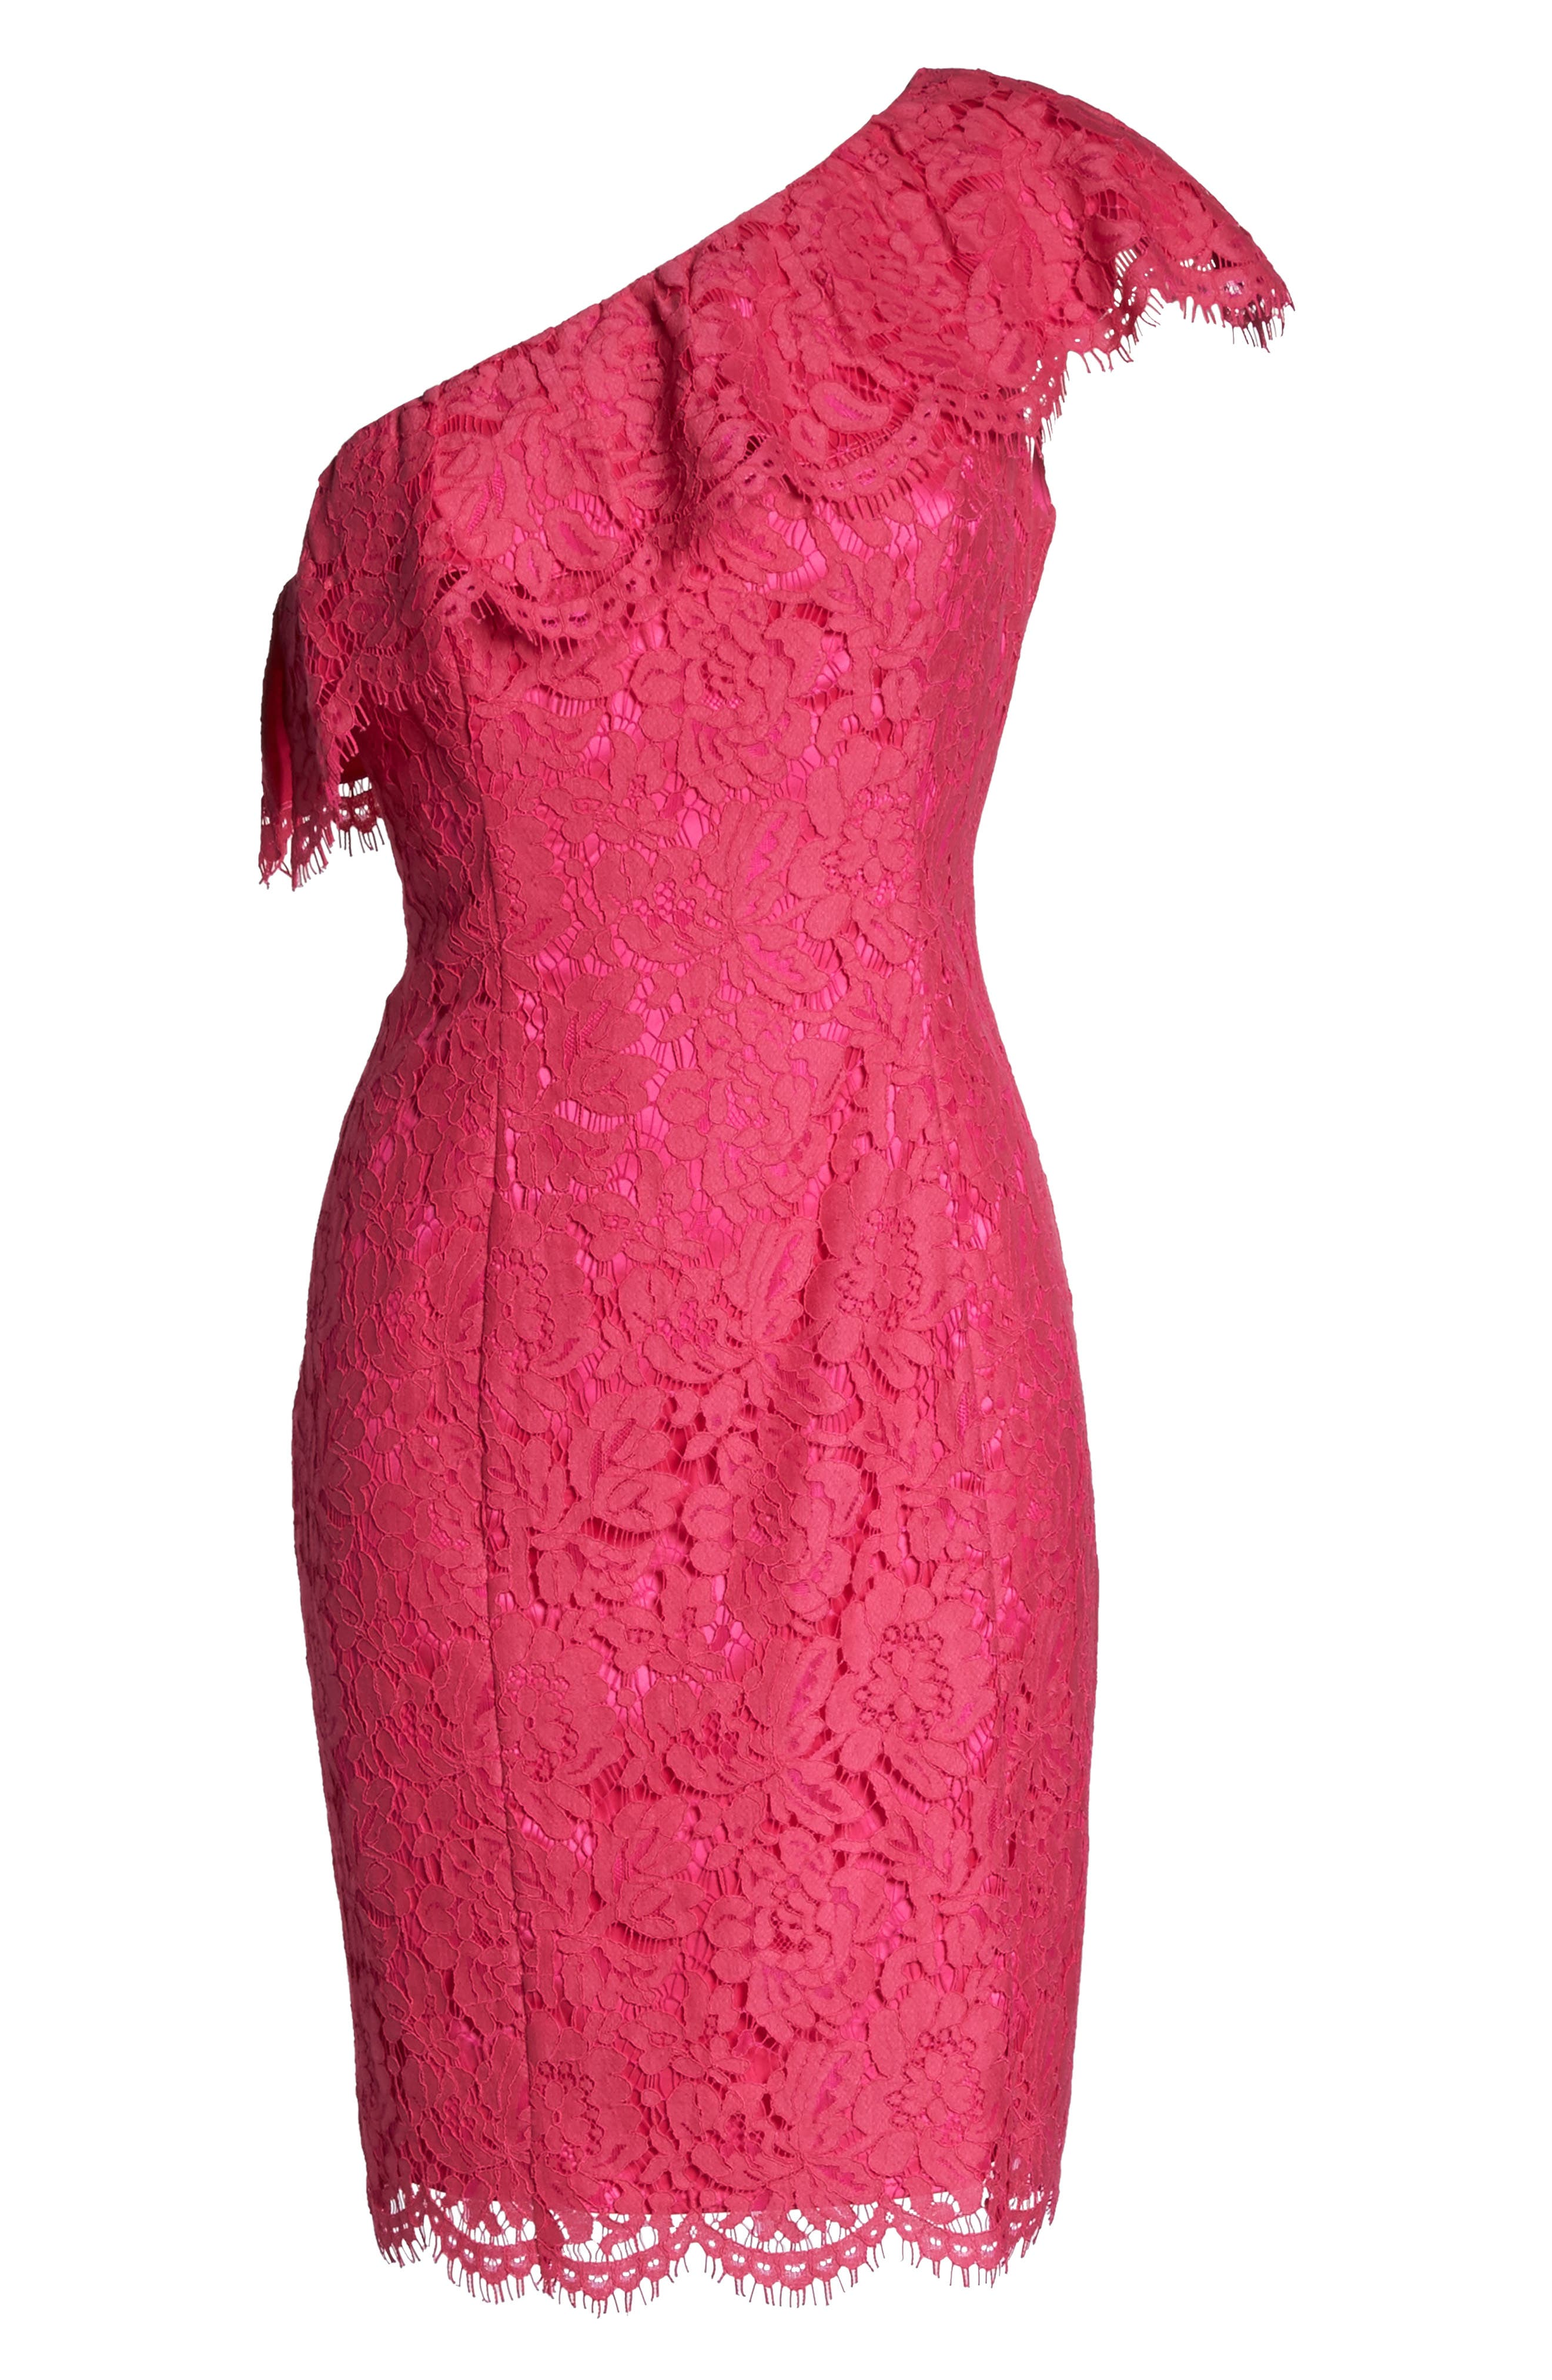 Ruffle Lace One-Shoulder Sheath Dress,                             Alternate thumbnail 6, color,                             Pink